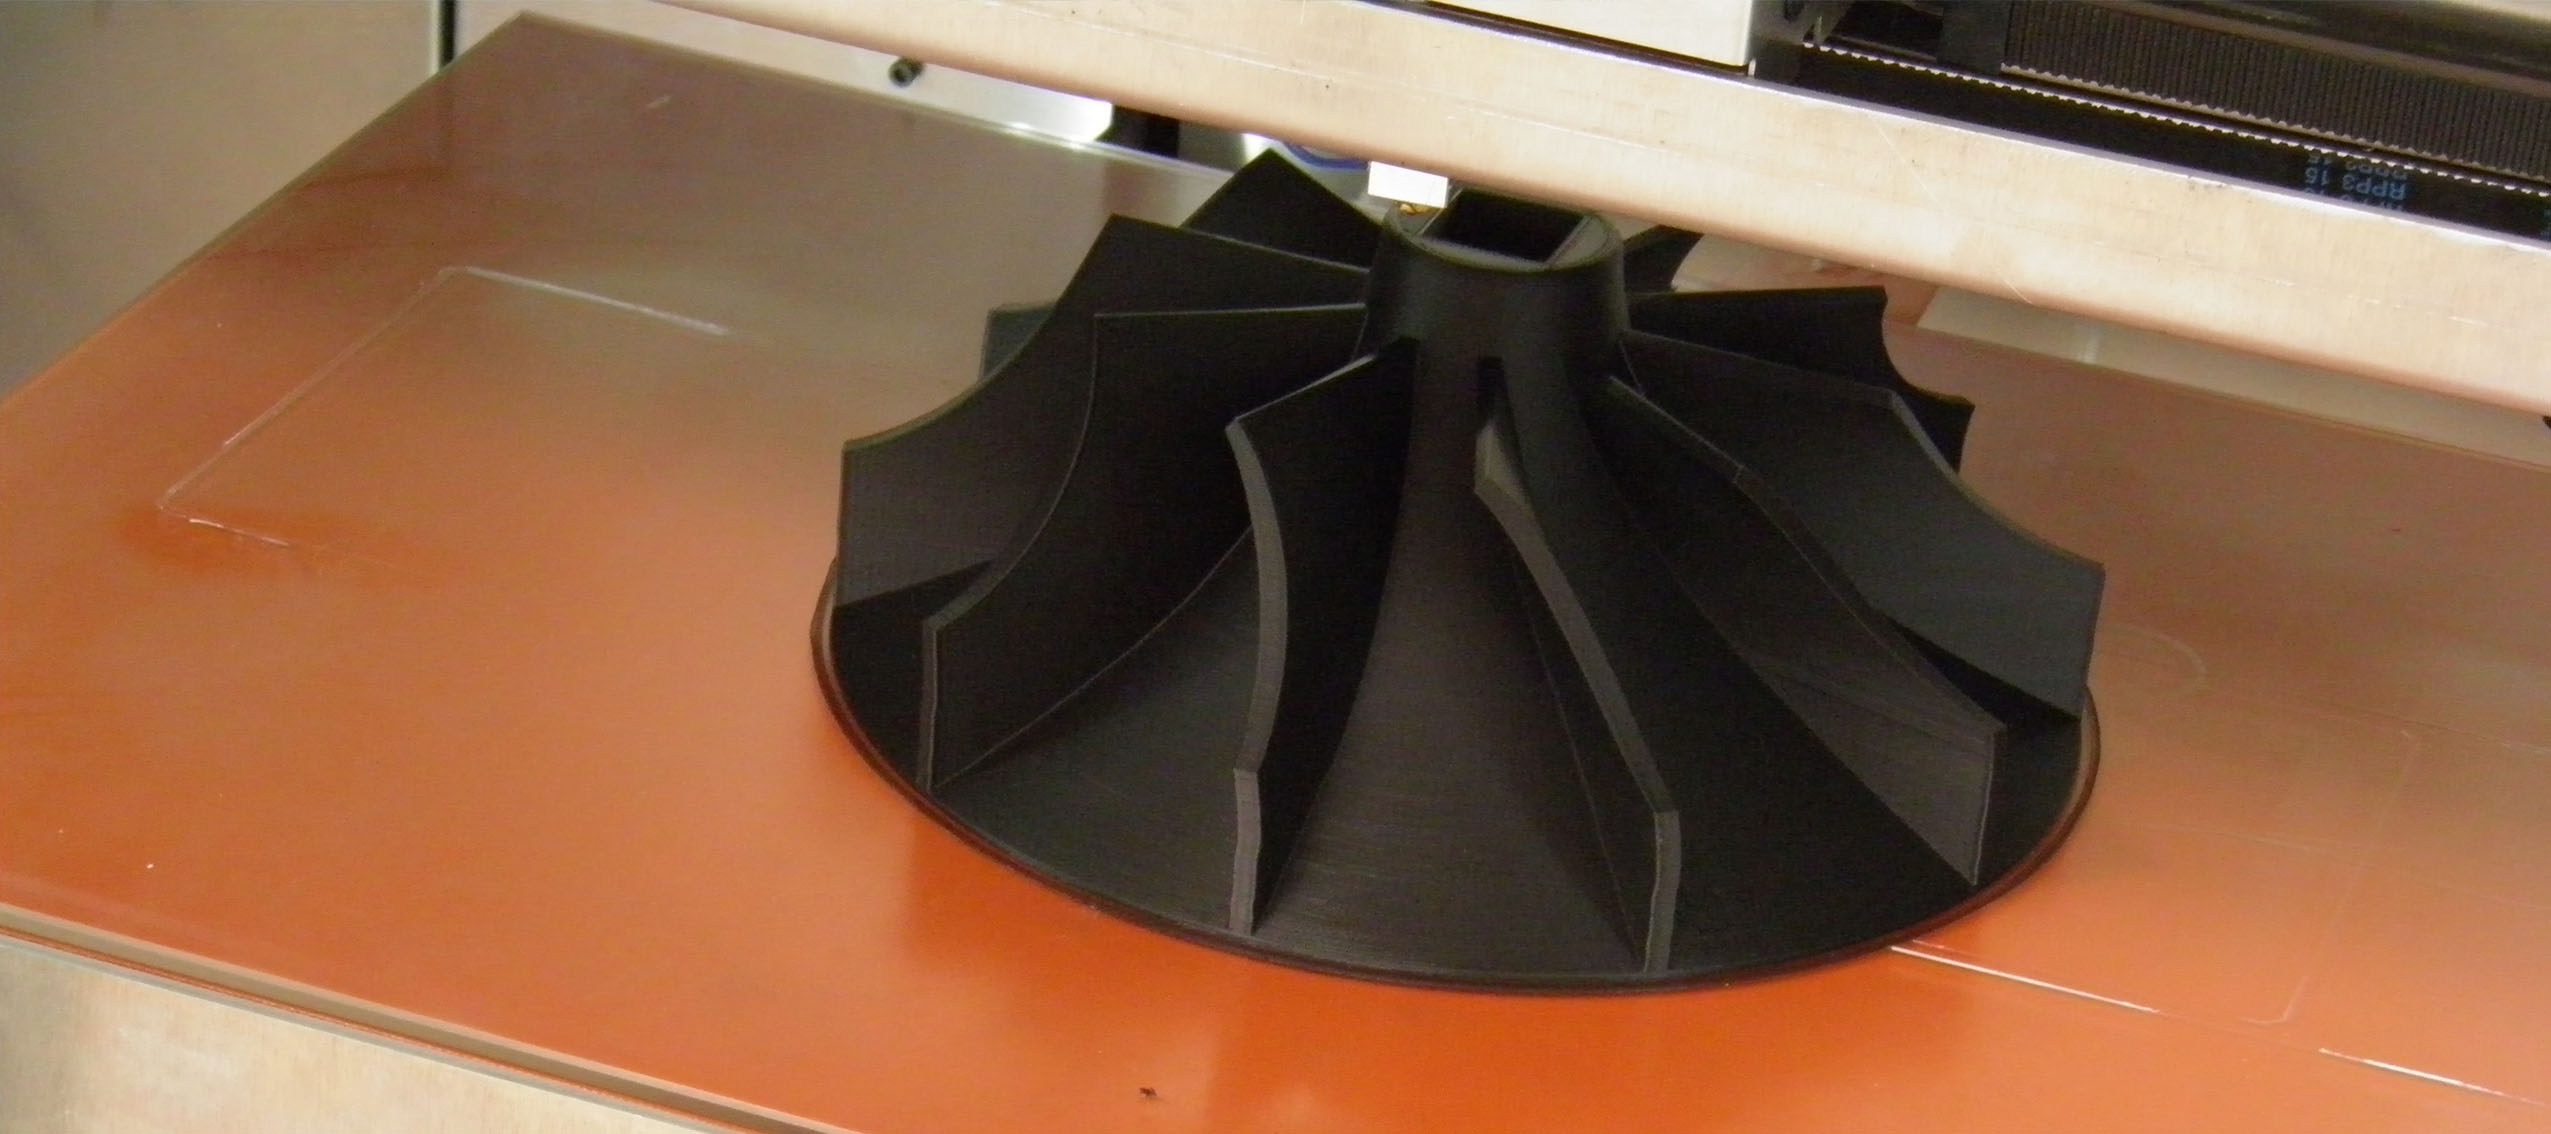 GRUPO SICNOVA launches new large format industrial 3D printer and automated 3D measurement cabin